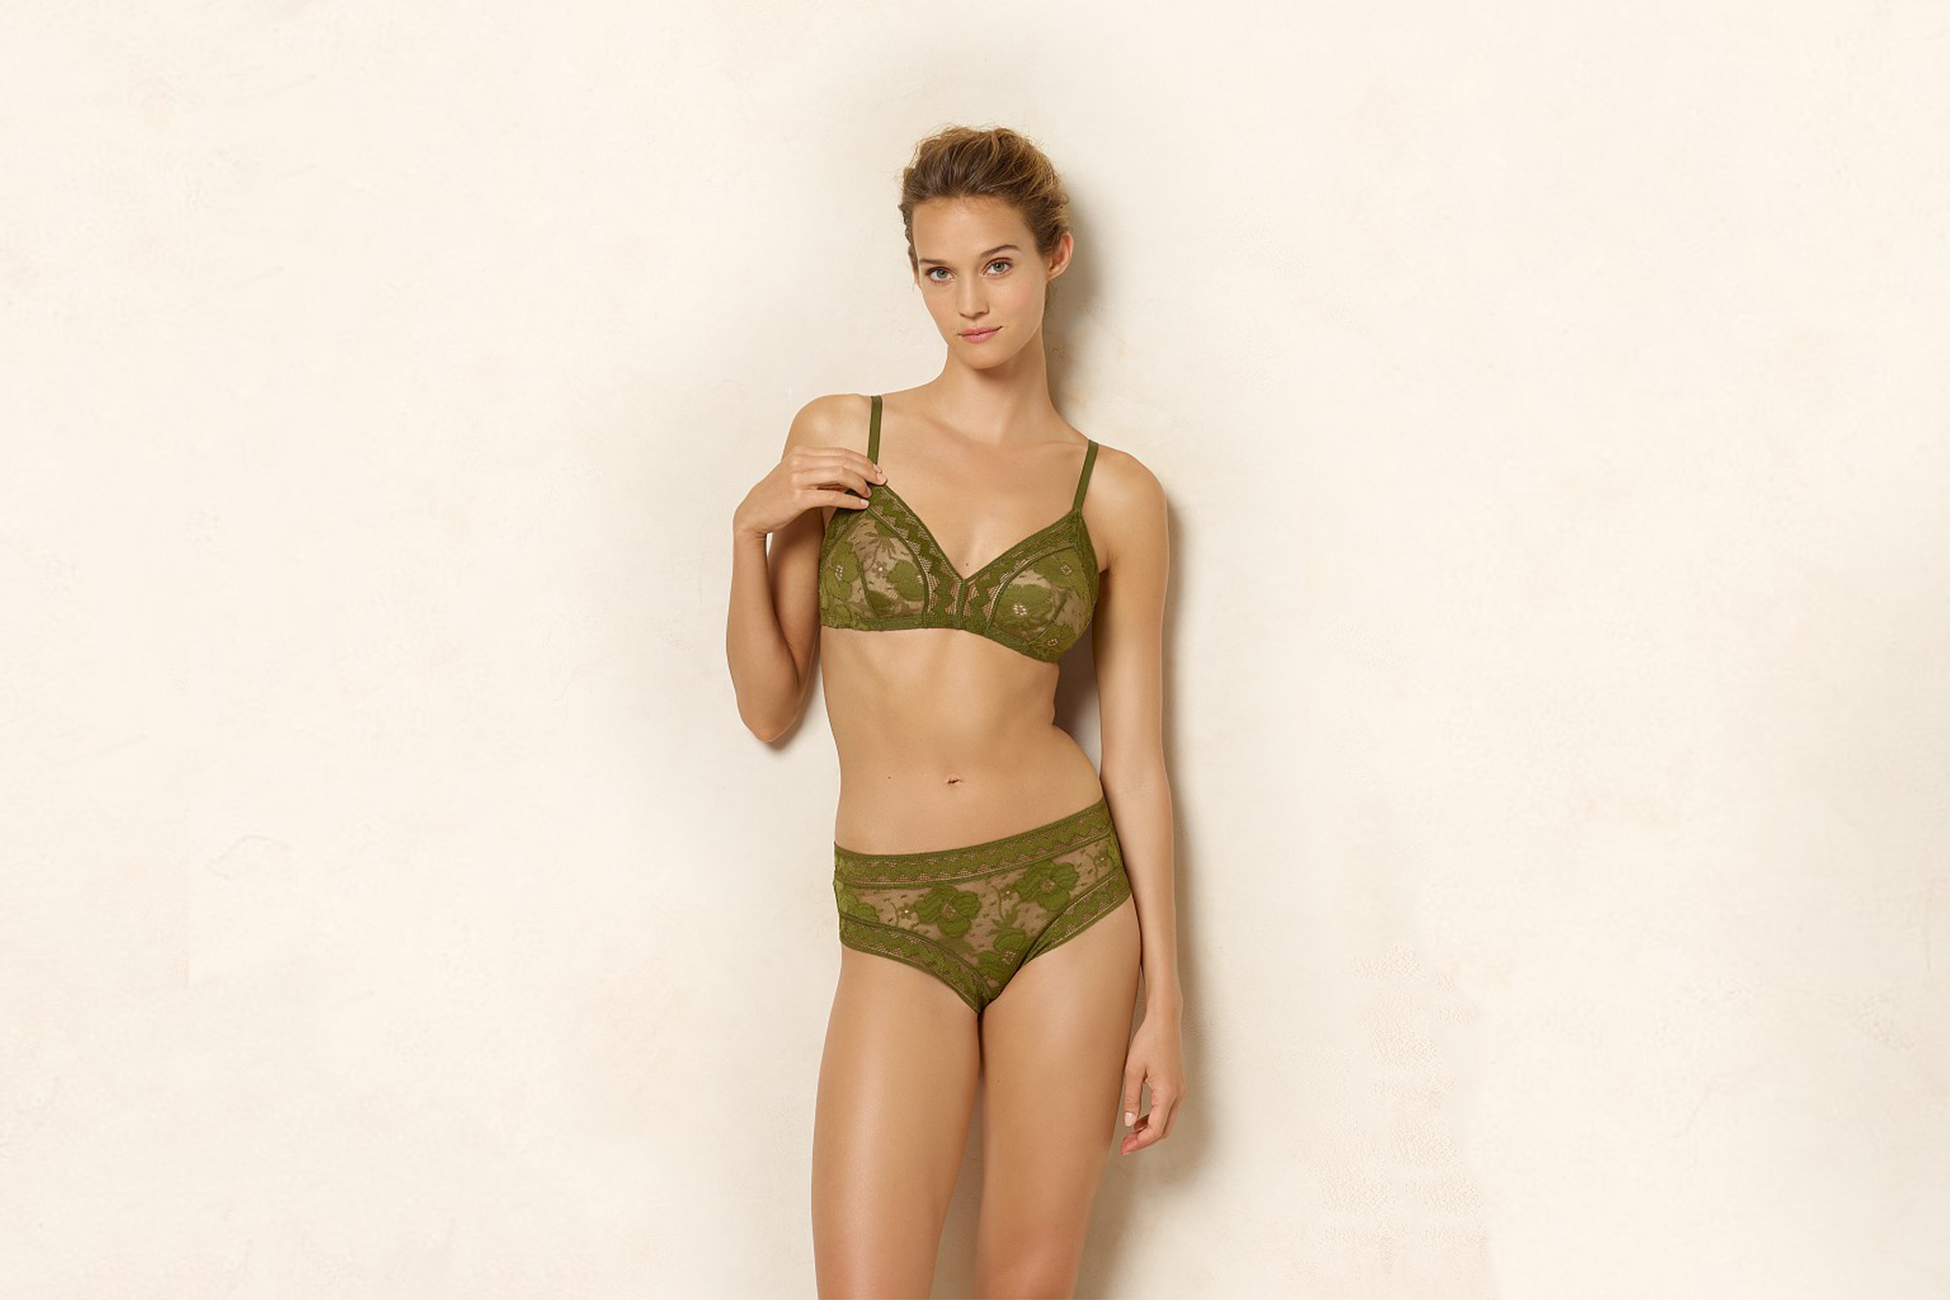 Rosier Triangle bra standard view 2